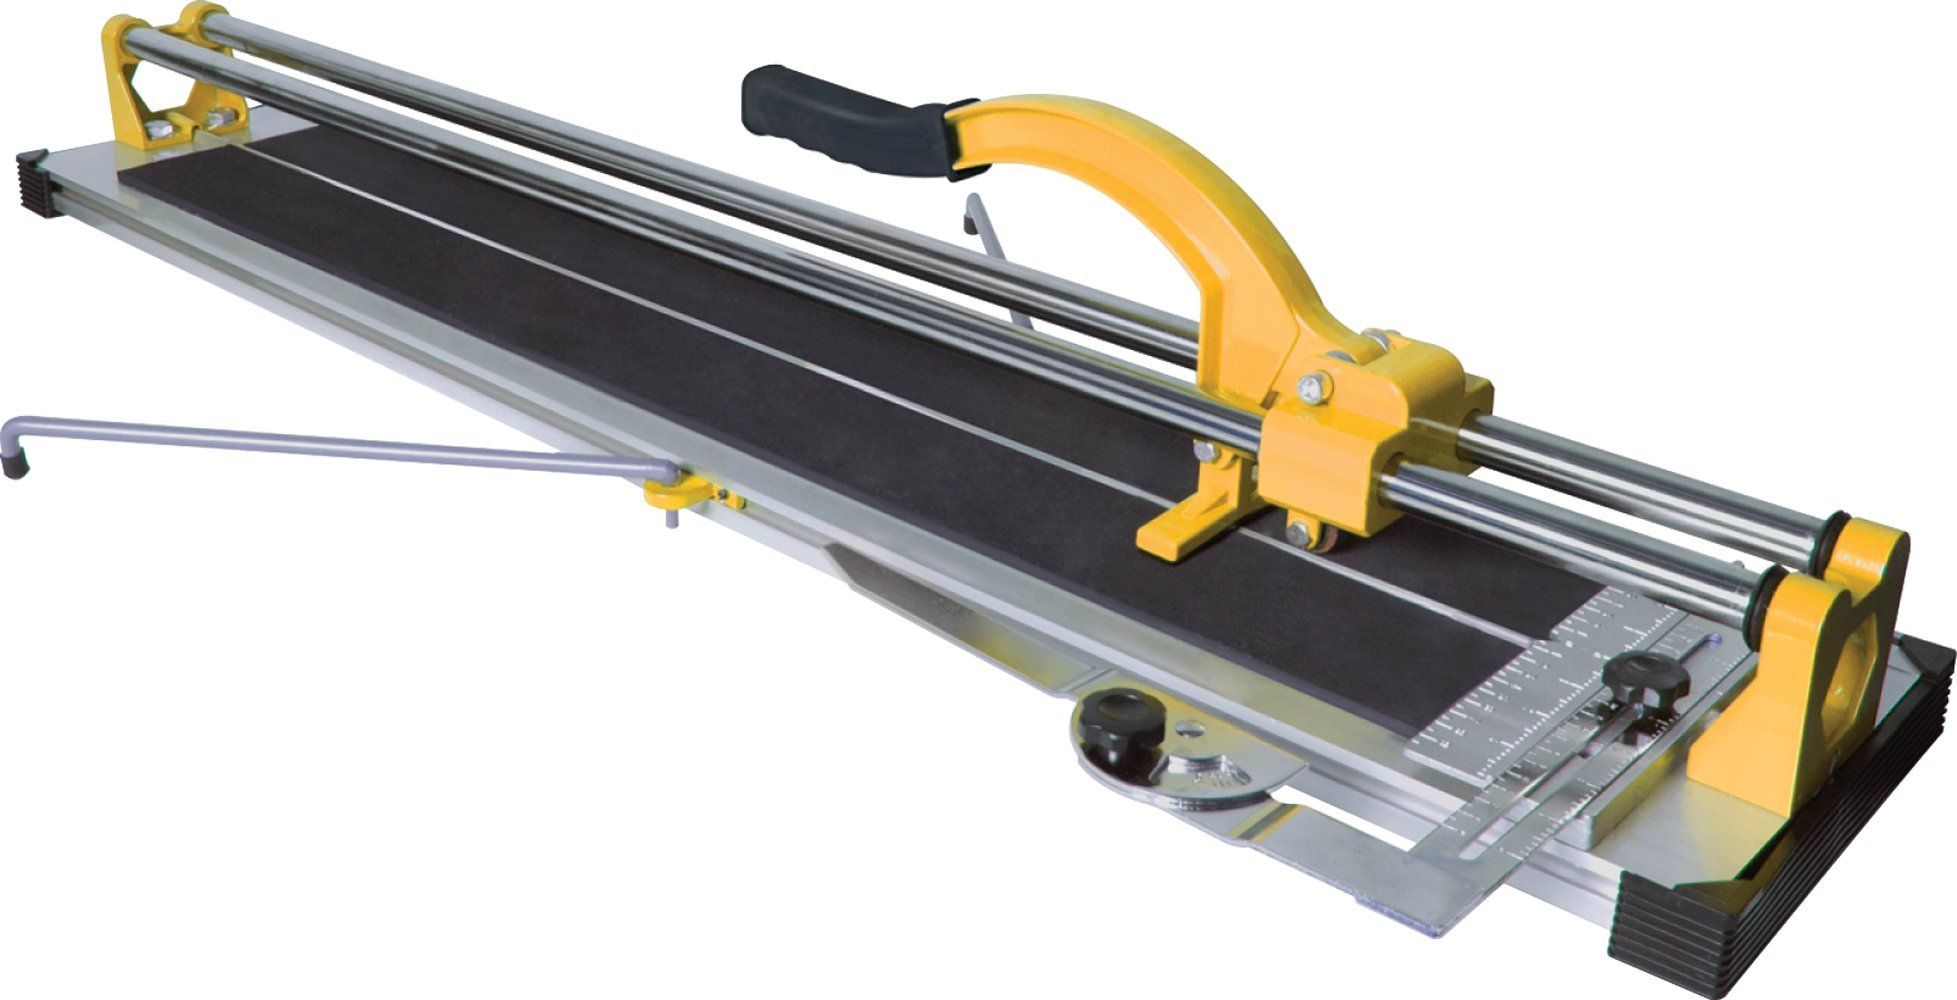 QEP 10900Q  35-Inch Manual Tile Cutter with Tungsten Carbide Scoring Wheel for Porcelain and Ceramic Tiles (Renewed)